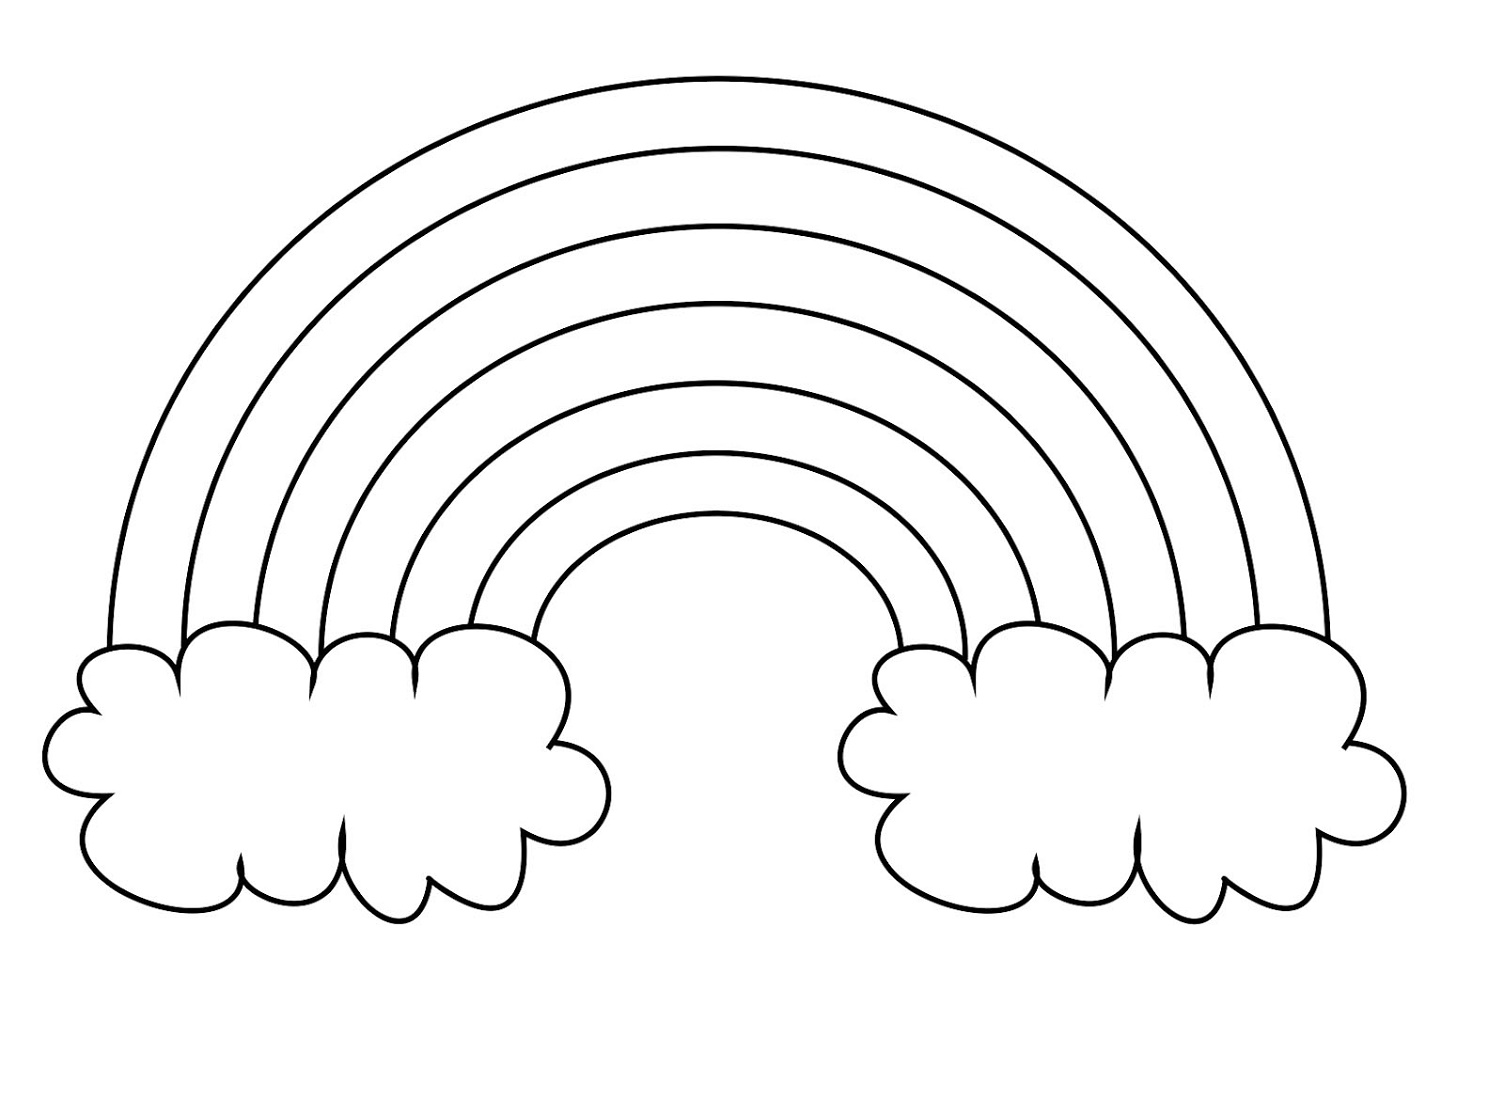 Coloring Pages For Kids To Print Simple Things